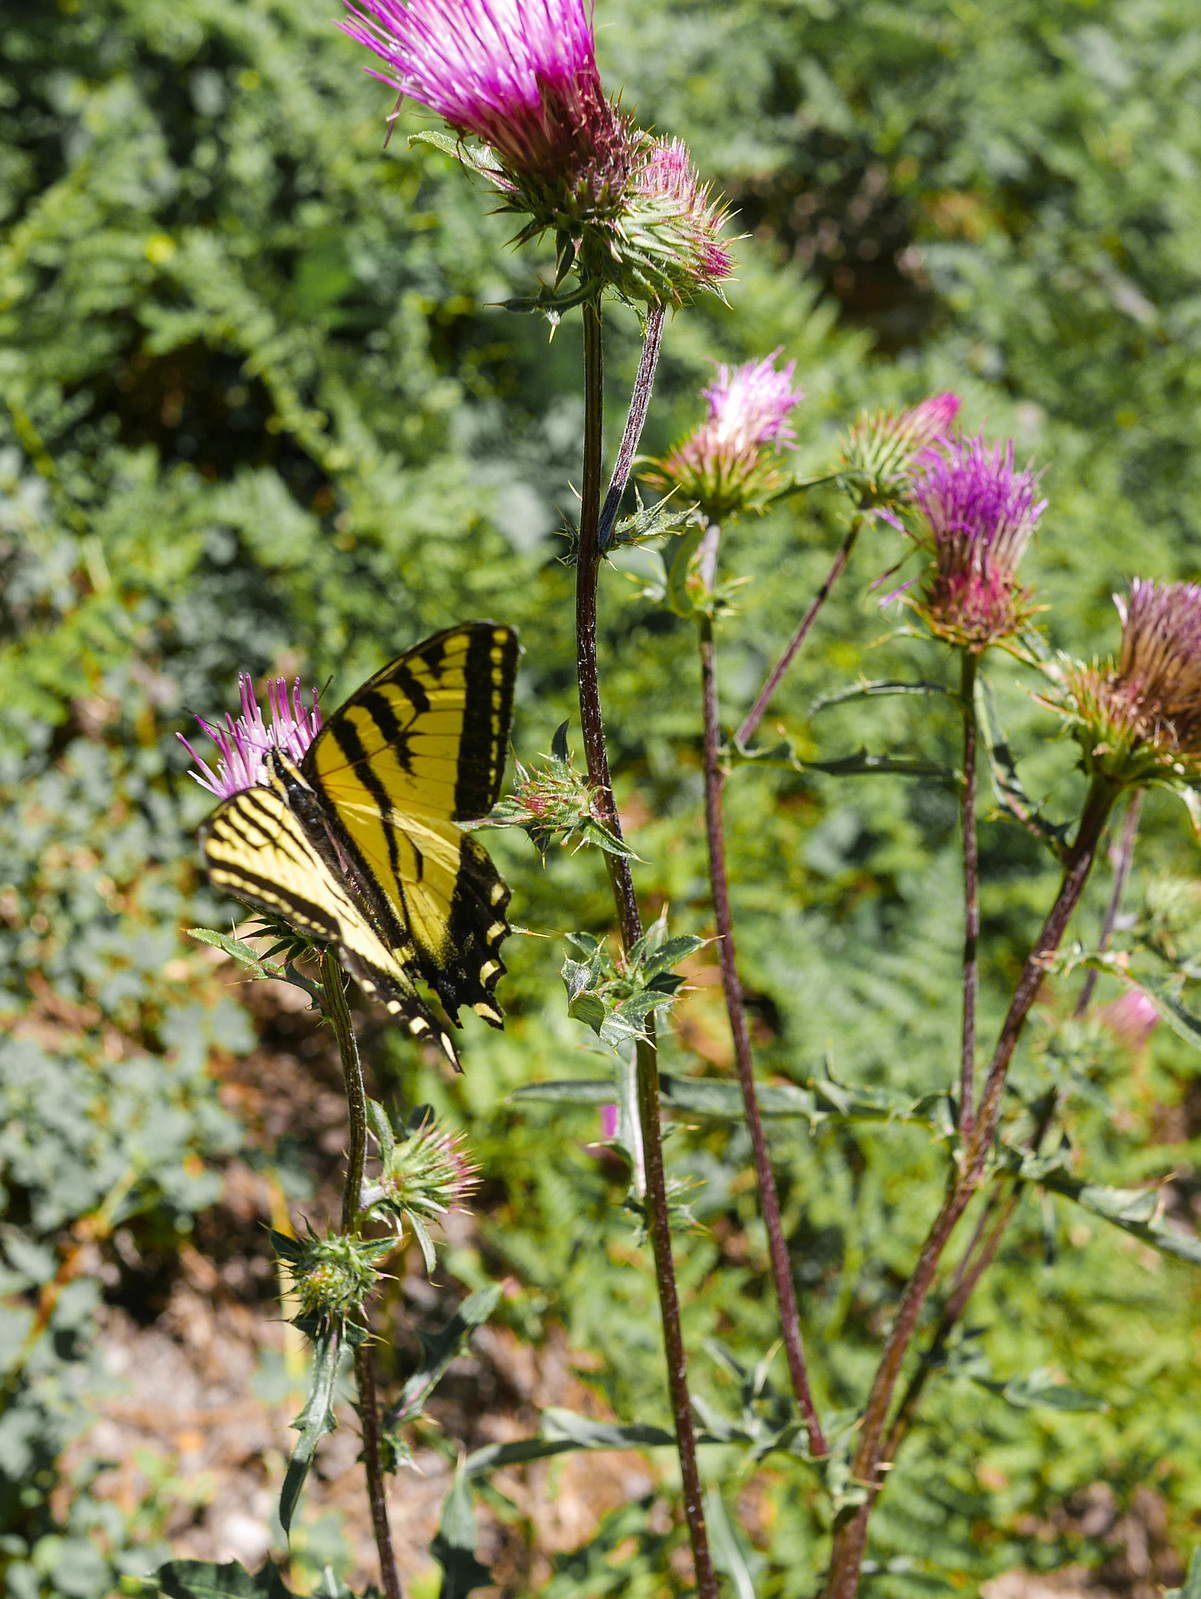 Butterfly on Anderson's Thistle